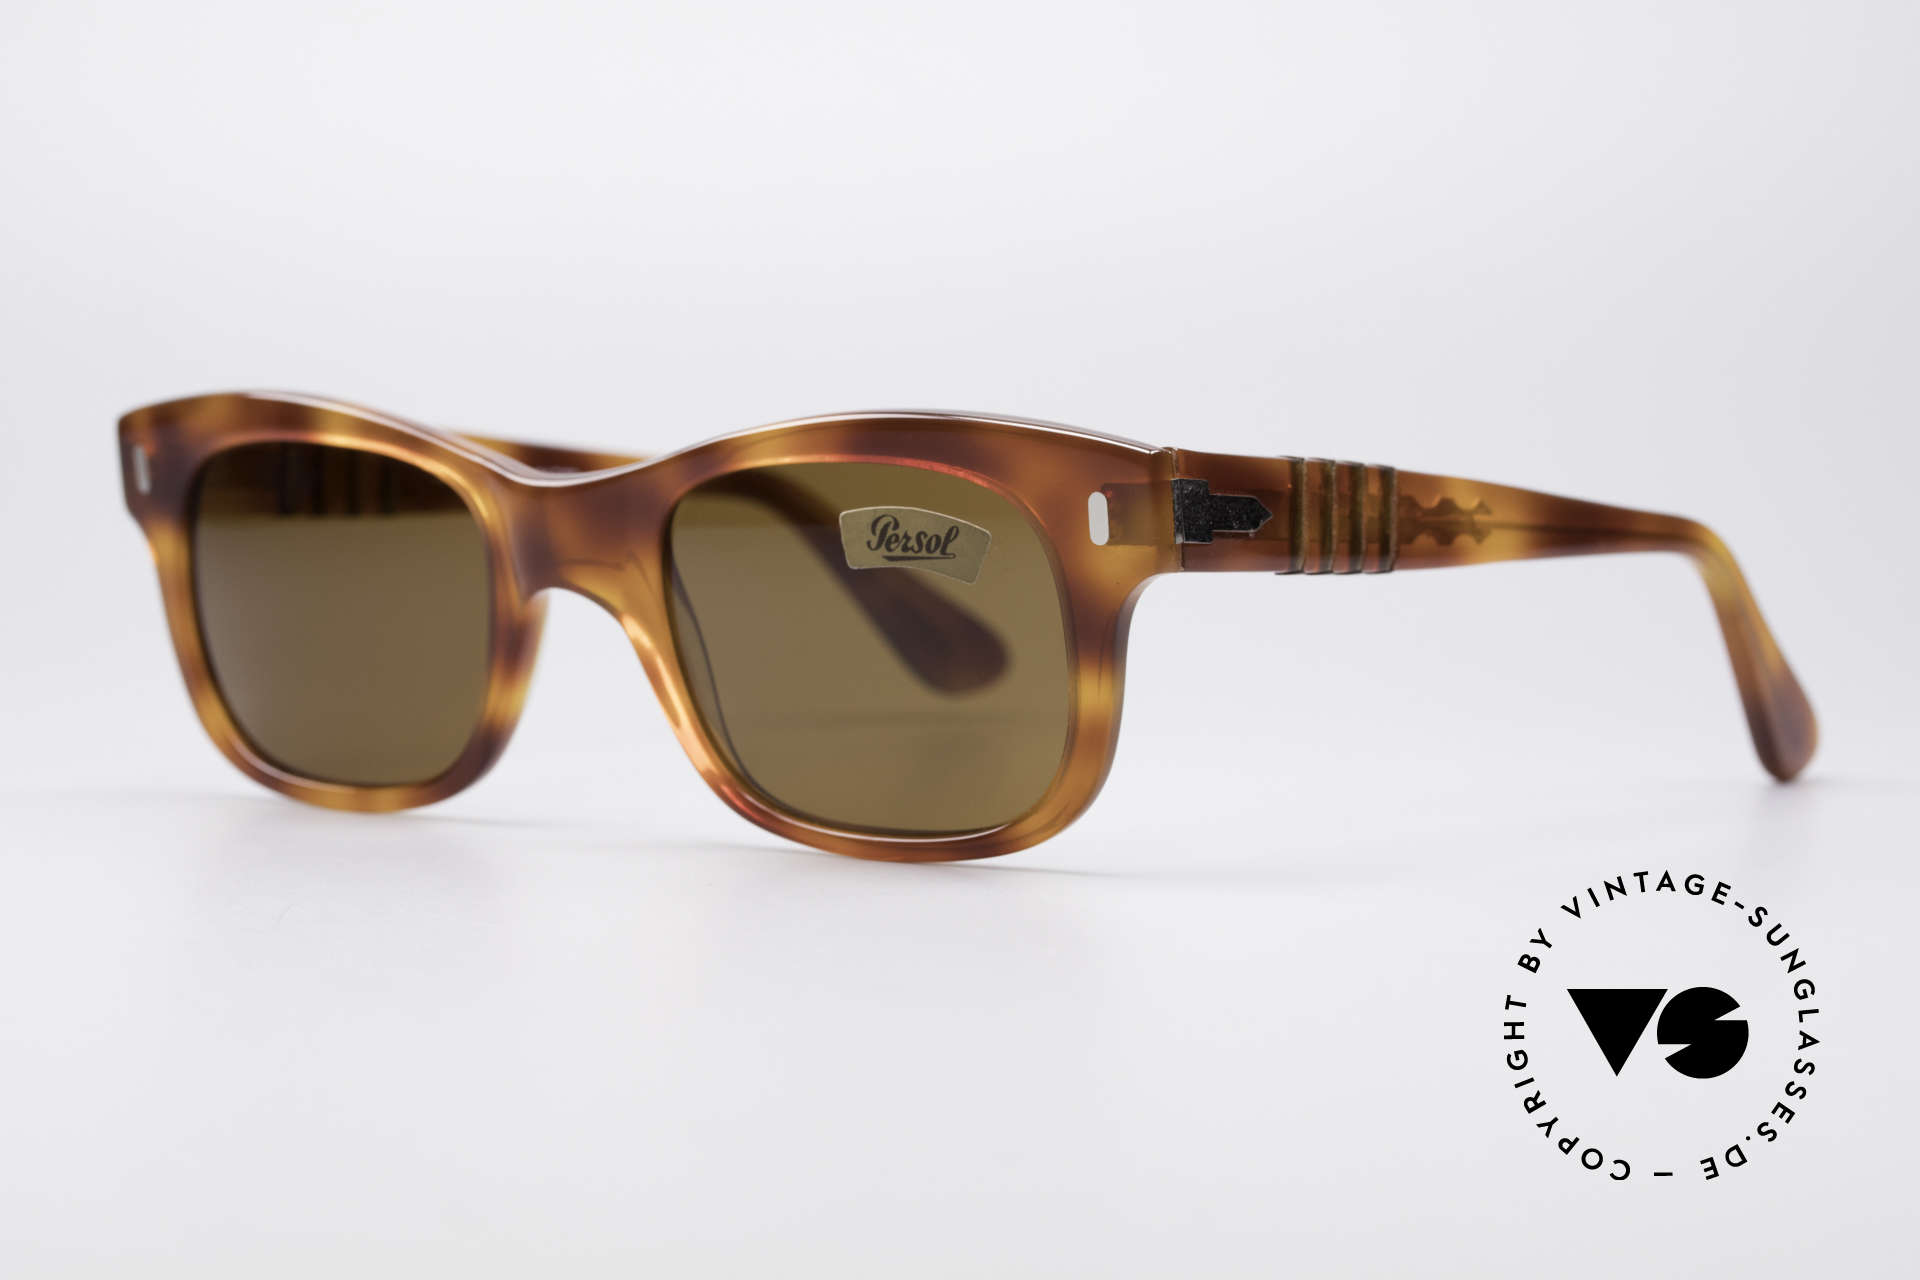 Persol 852 Ratti True Vintage 80's Shades, high-end quality (legendary mineral lenses, 100% UV), Made for Men and Women